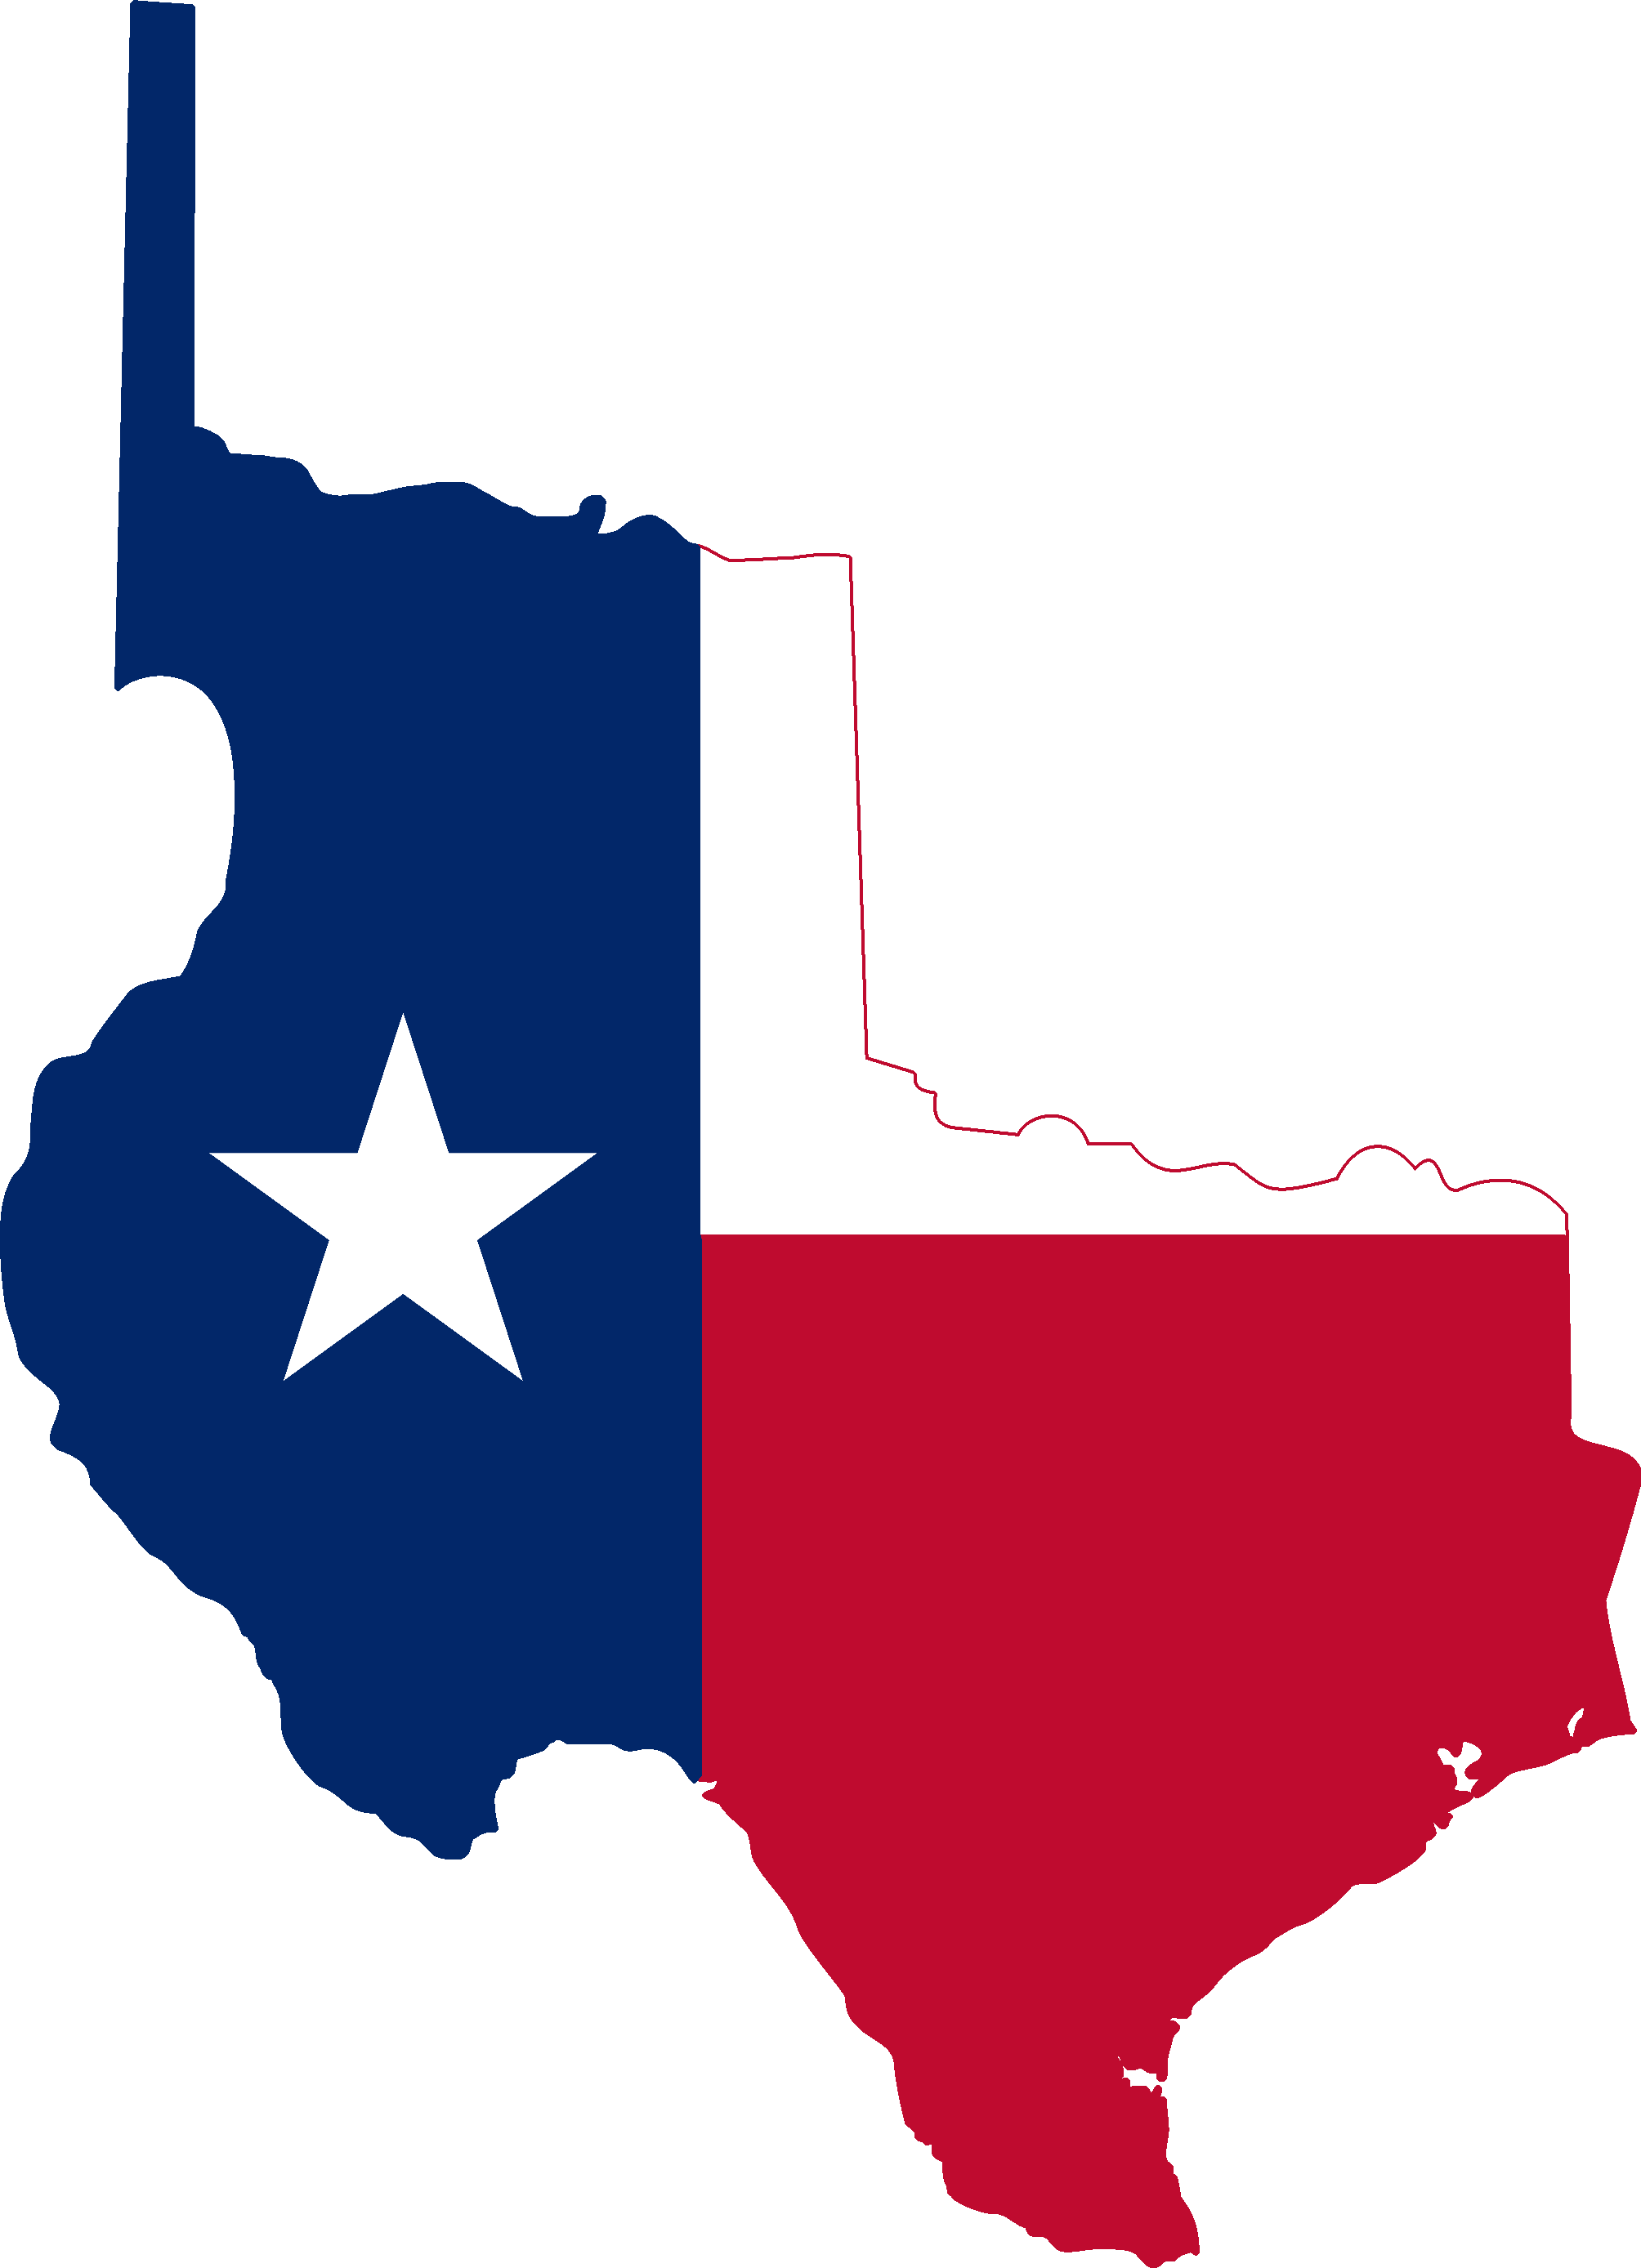 Texas state outline png. File flag map of